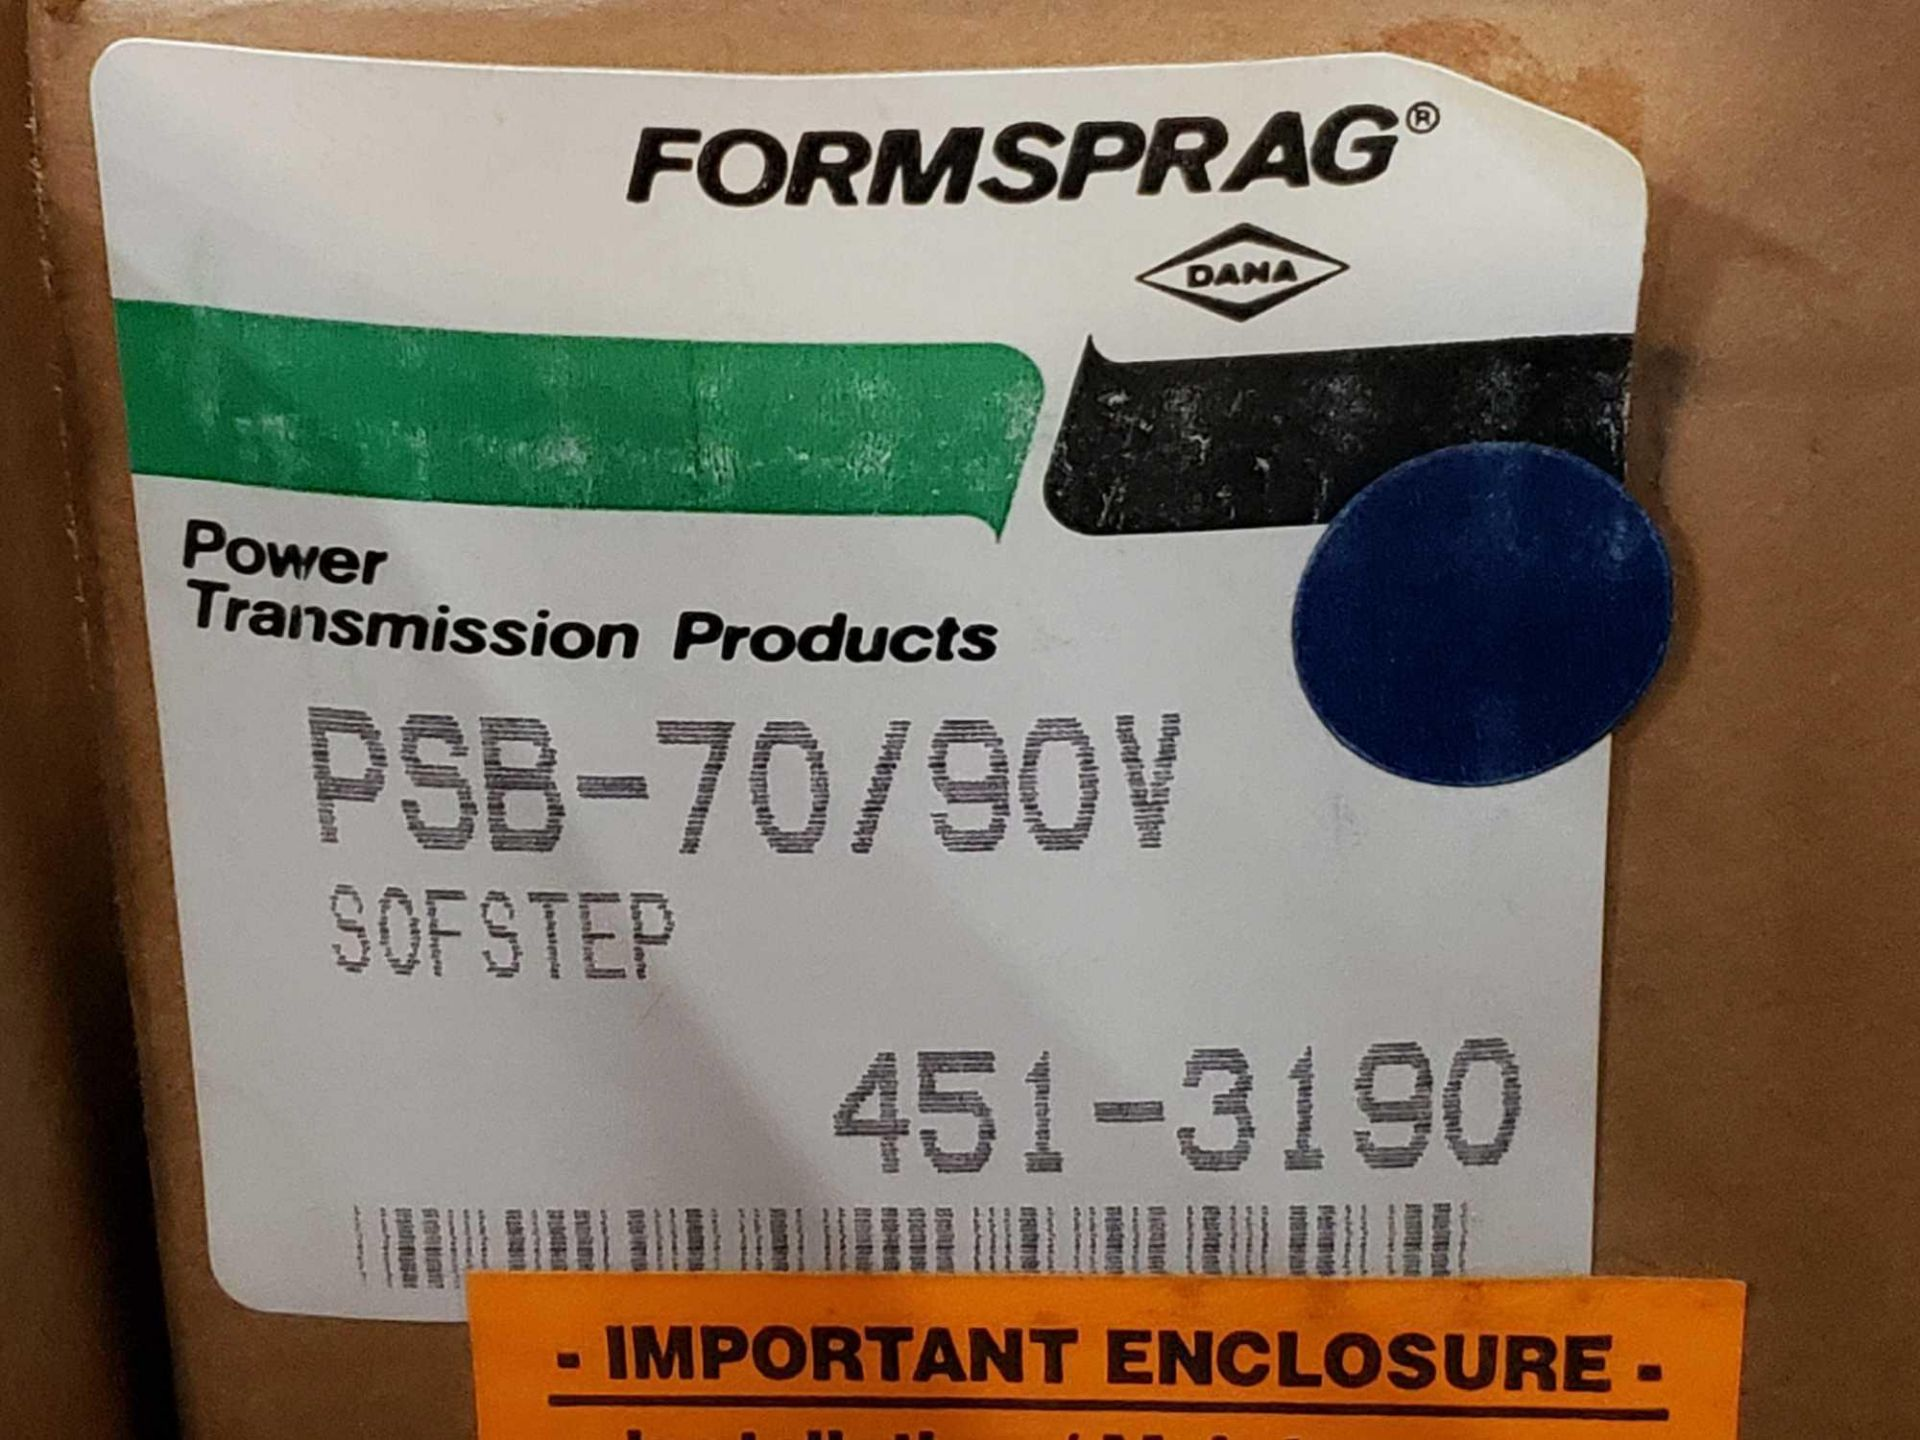 Lot 2 - Formsprag Magpowr sofstep model PSB-70/90V magnetic partical clutch brake. New in box.